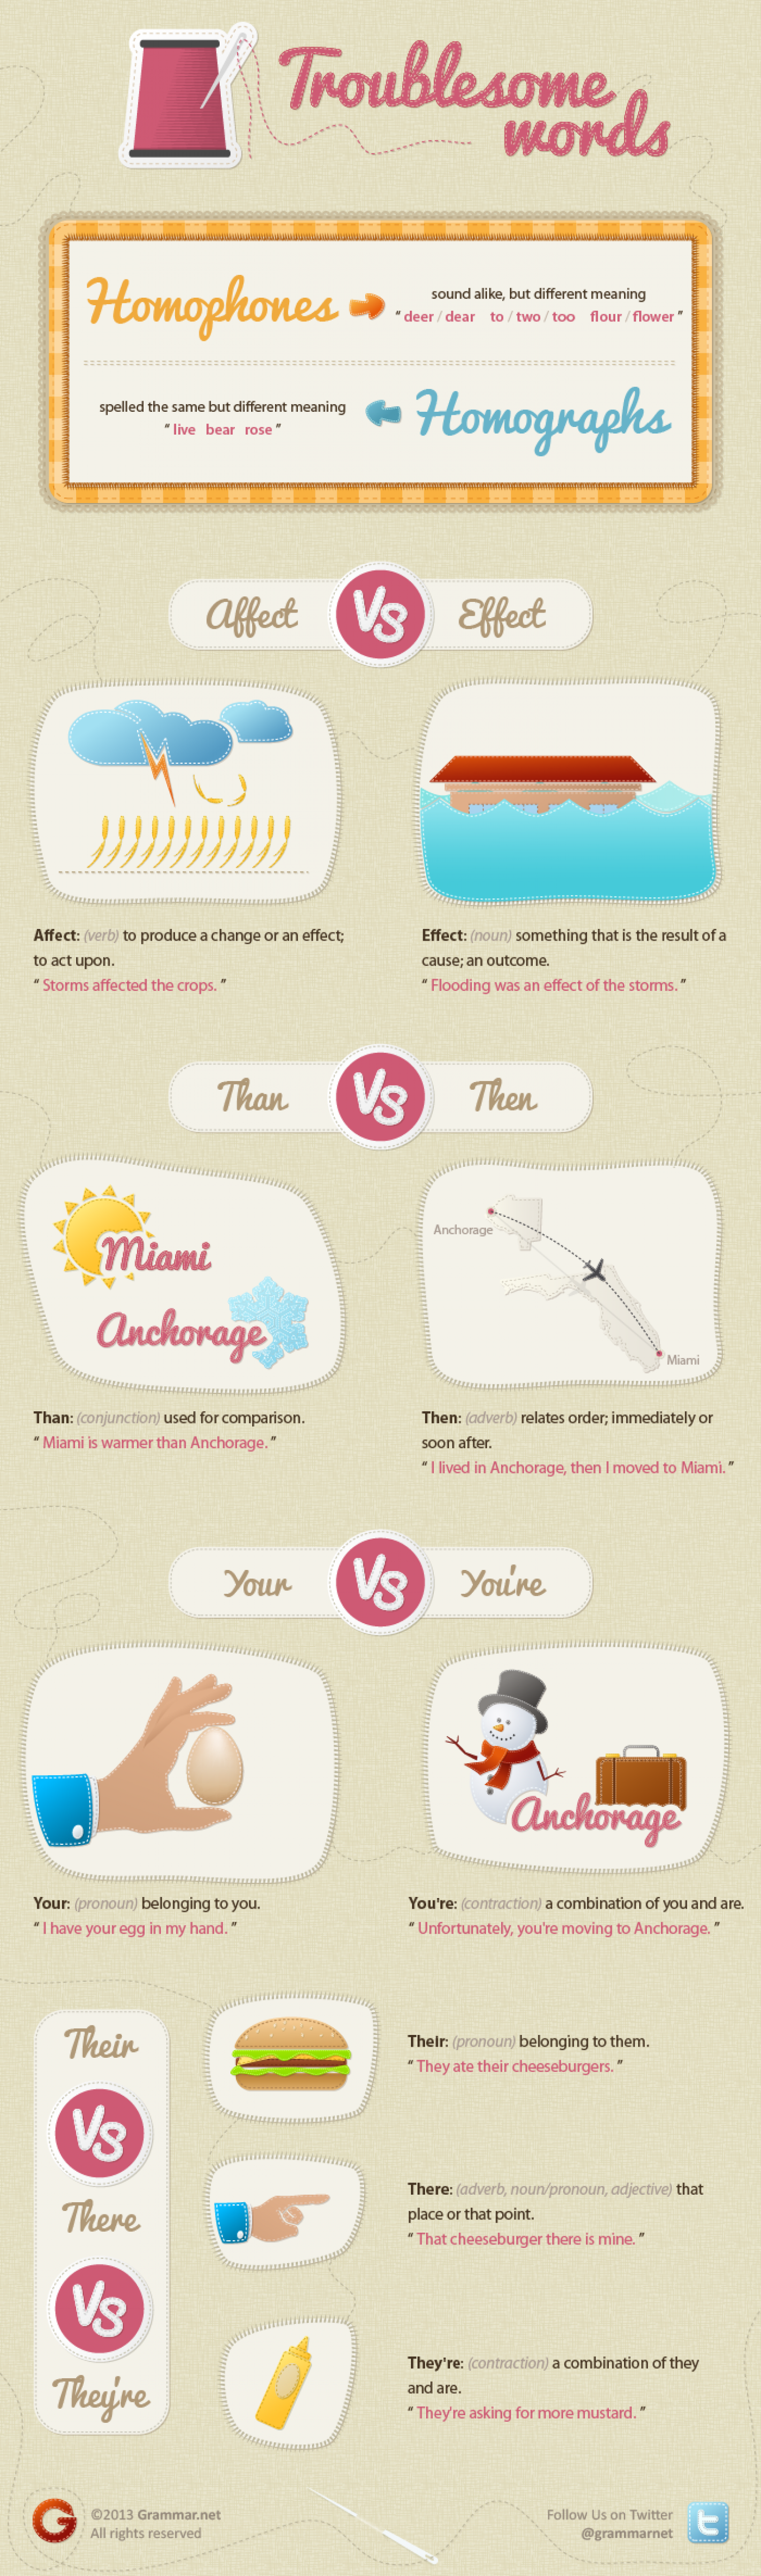 Troublesome words: affect vs. effect  Infographic